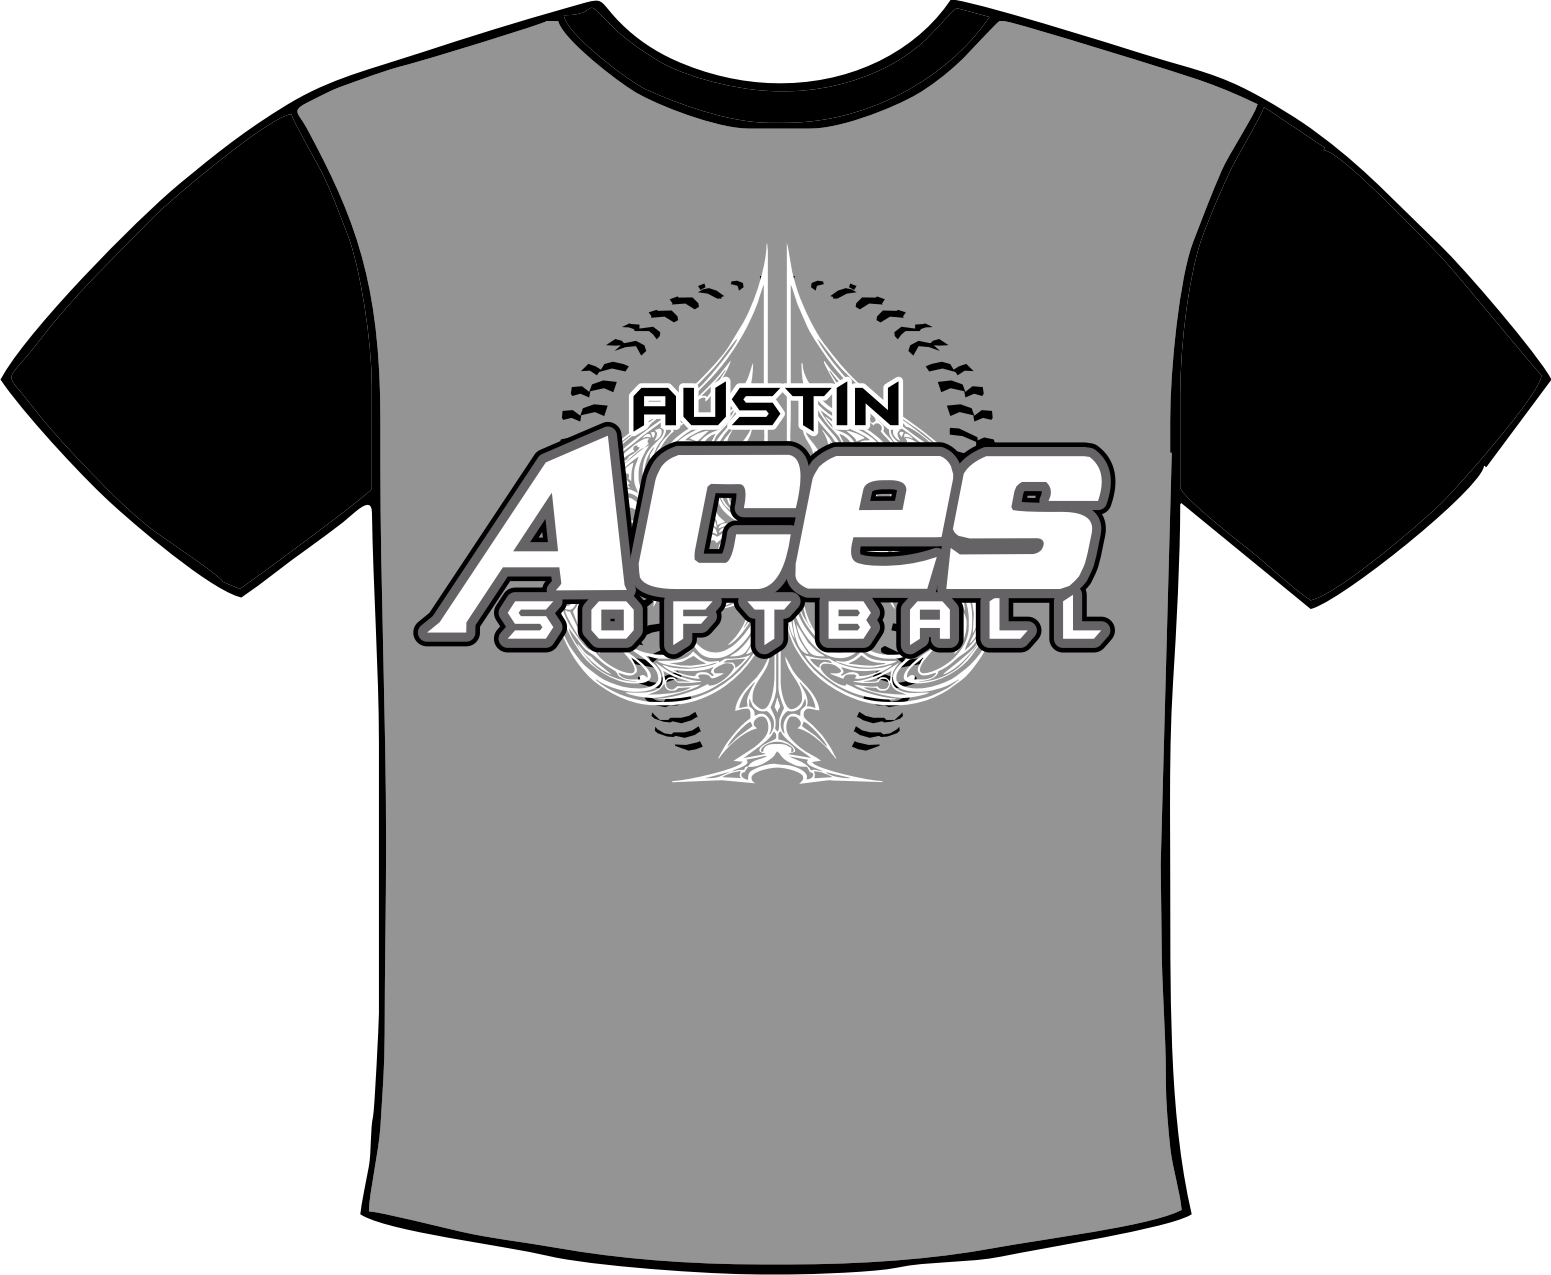 custom t shirt design airsoft team design idea design team t - Designs For T Shirts Ideas